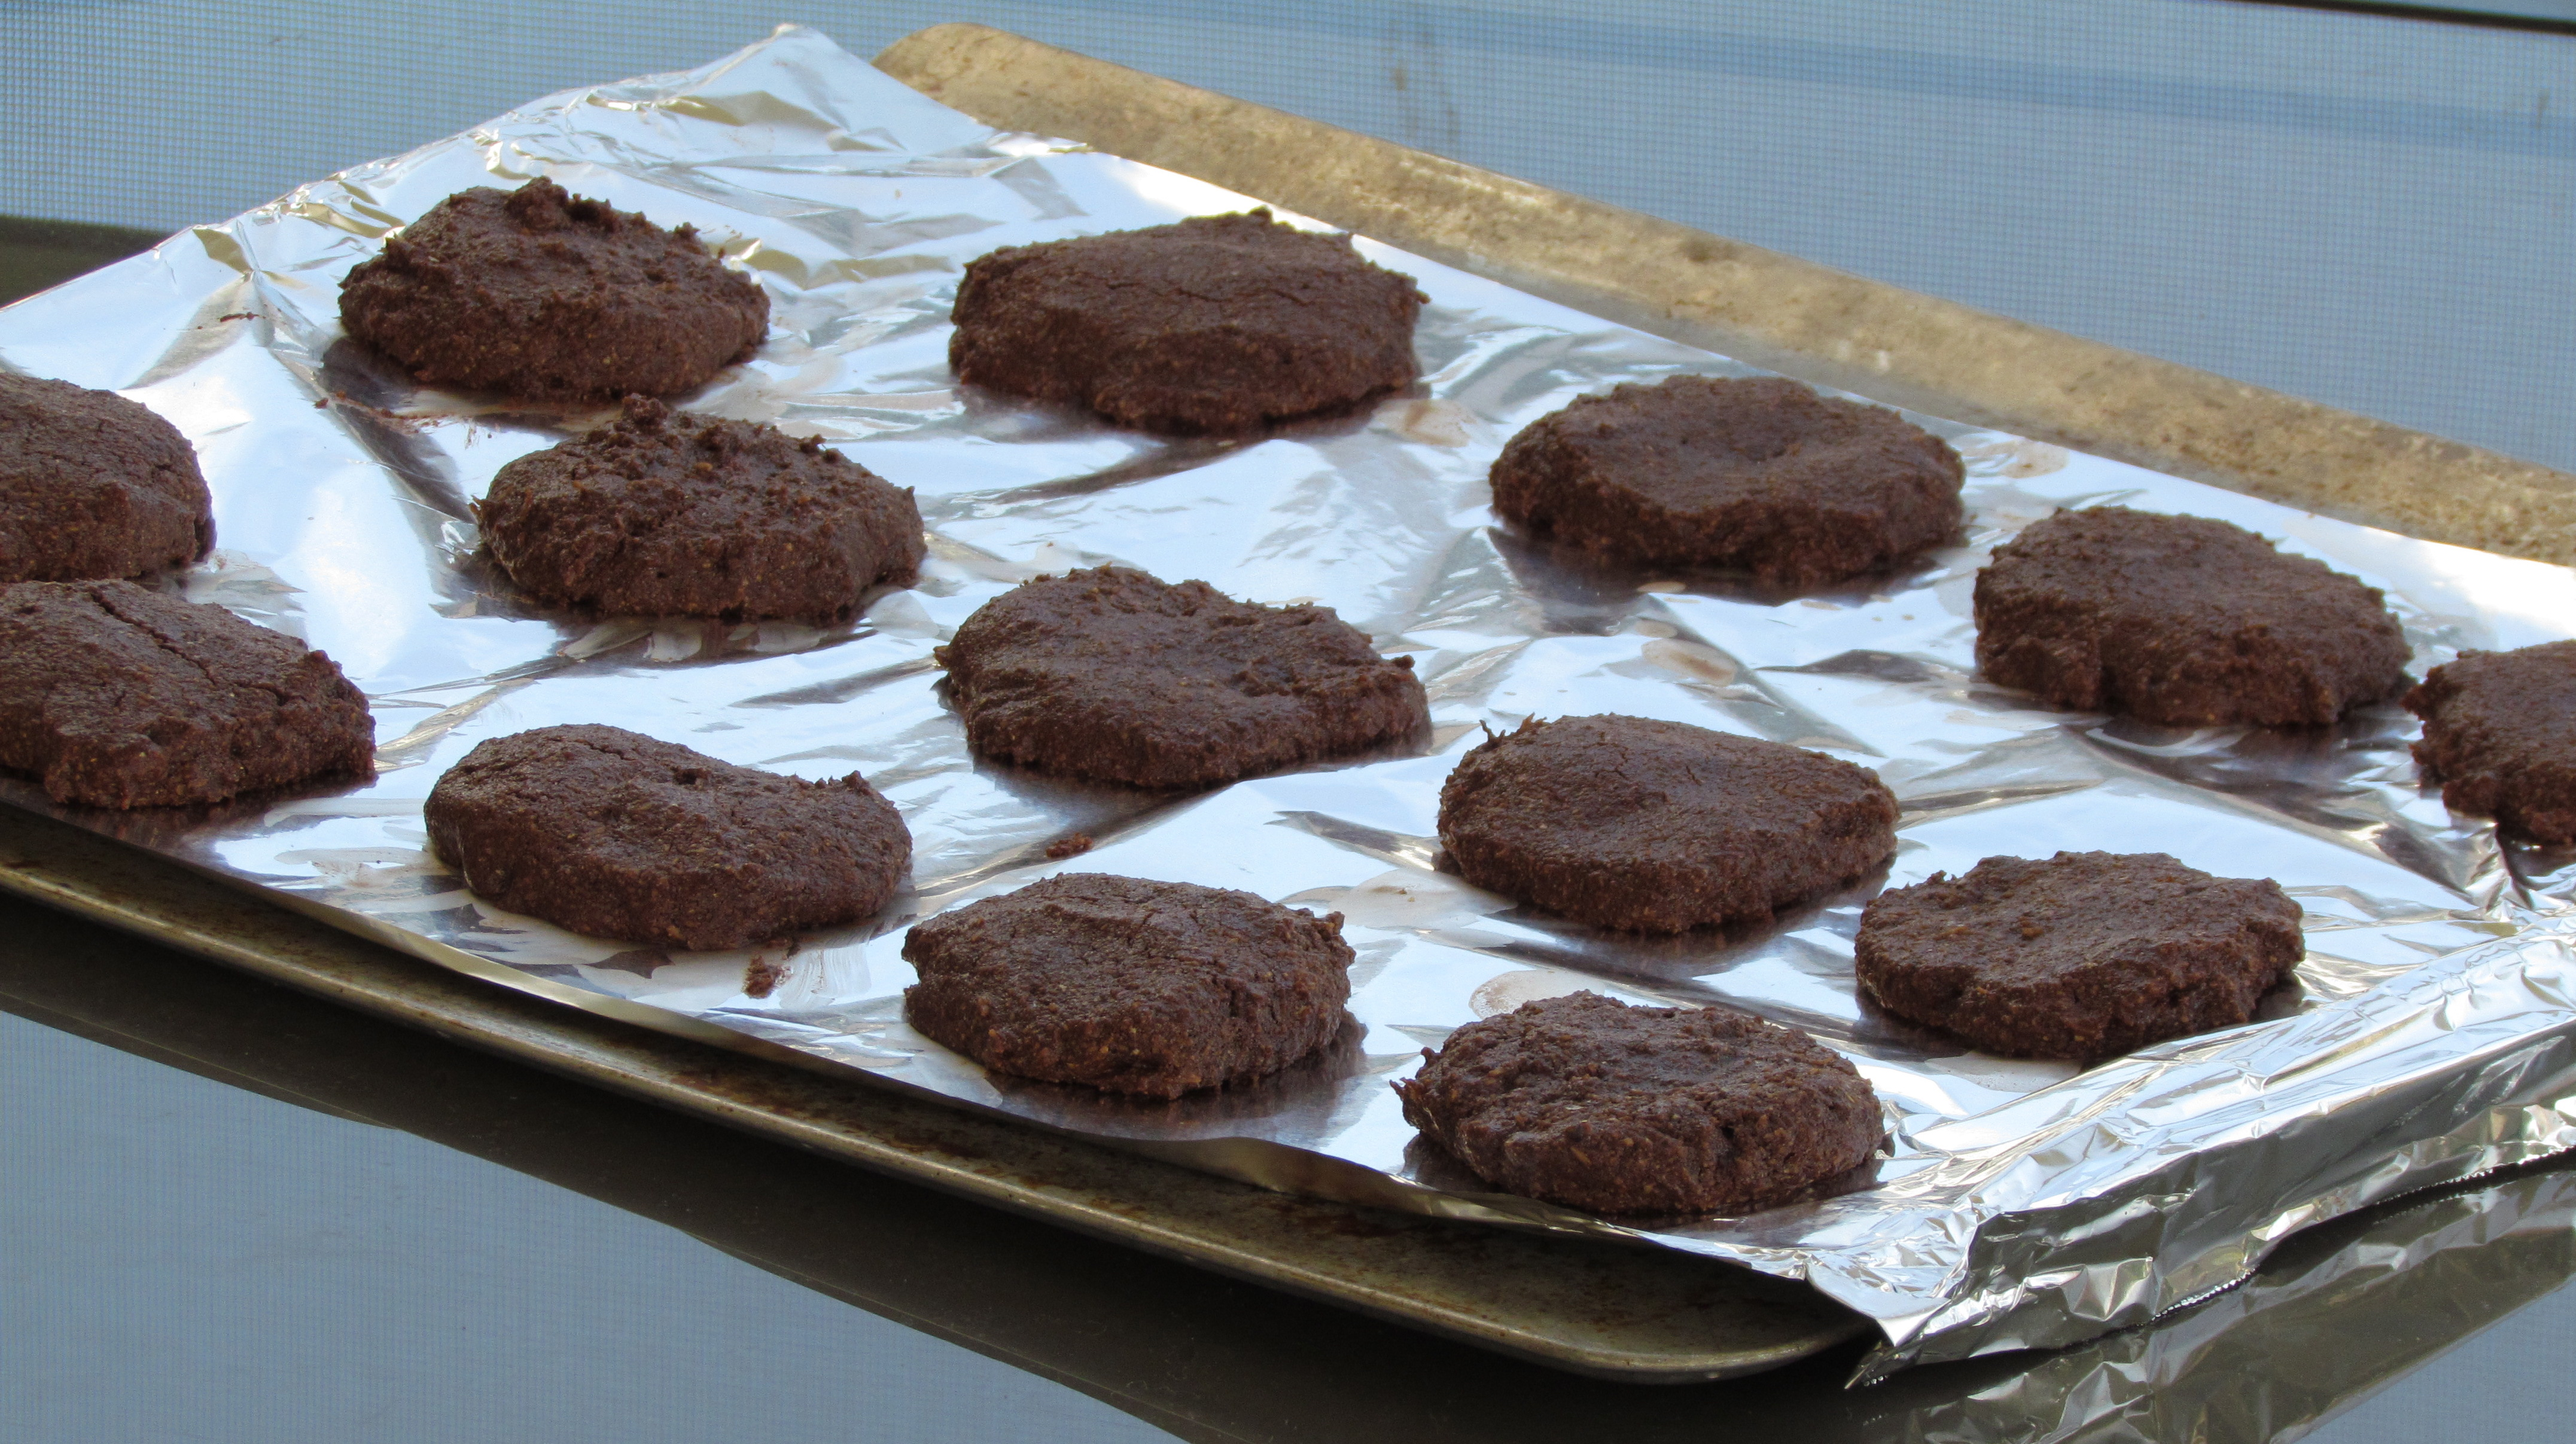 These chocolate coconut cookies are reminiscent of a brownie with a soft, delicate texture.